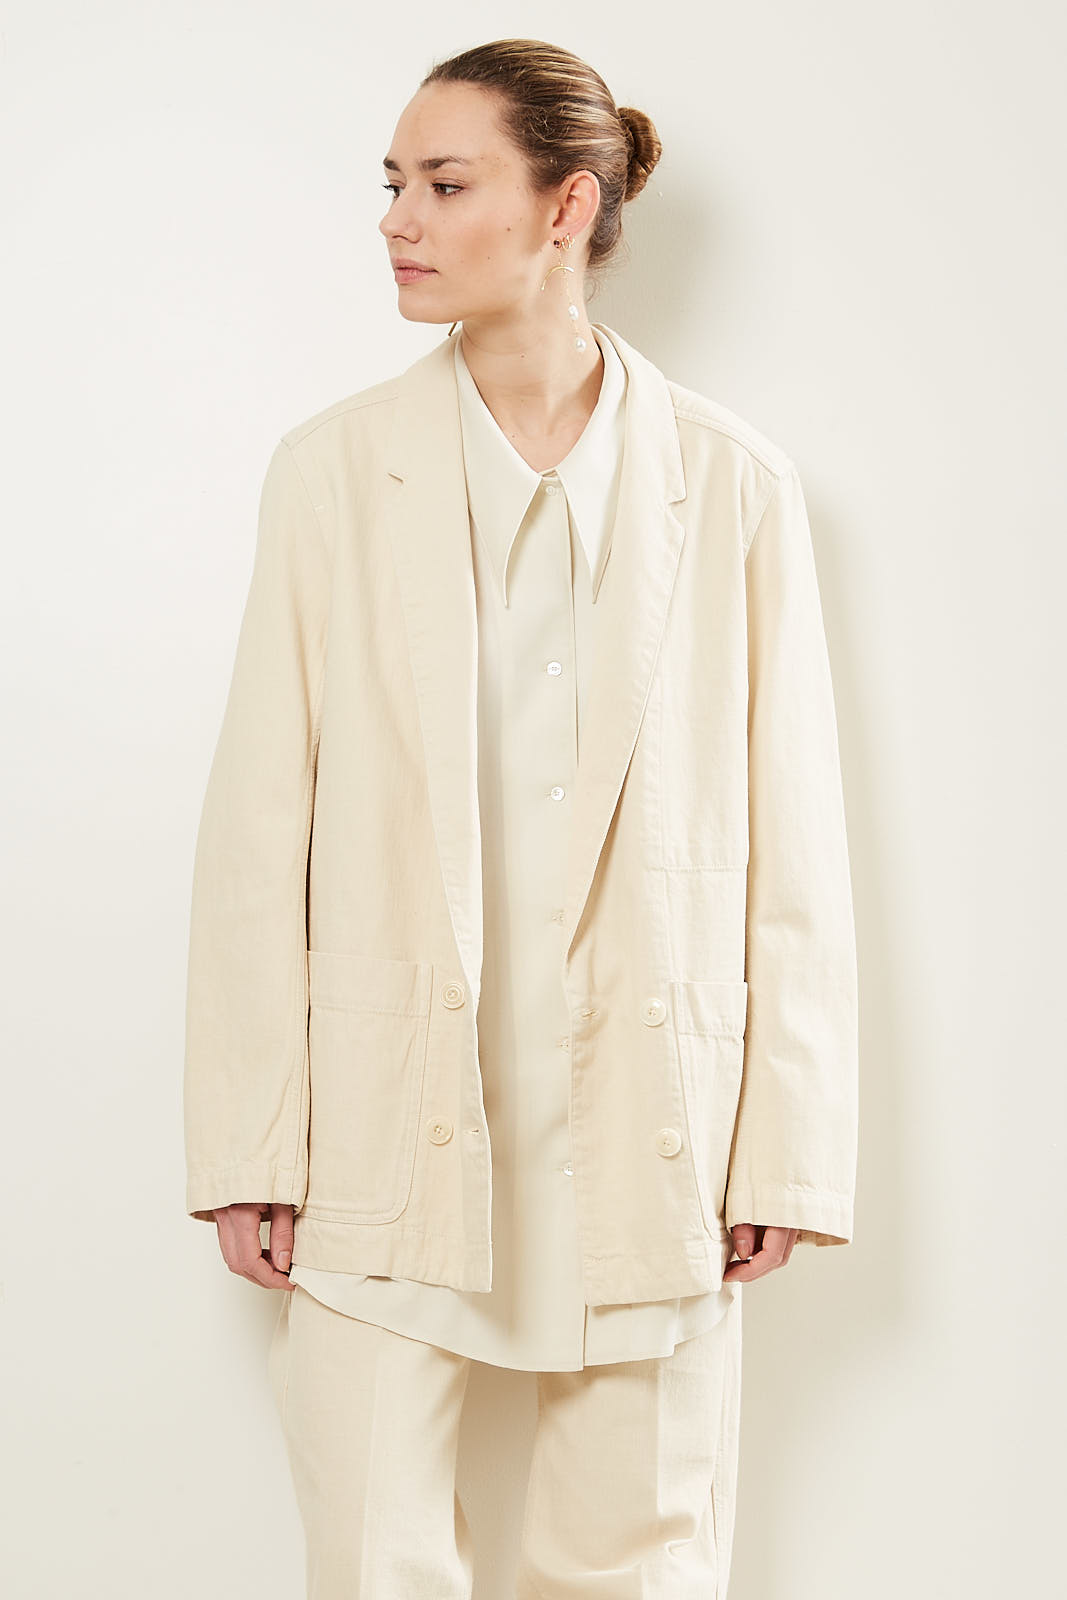 Lemaire Double breasted jacket 507 cream